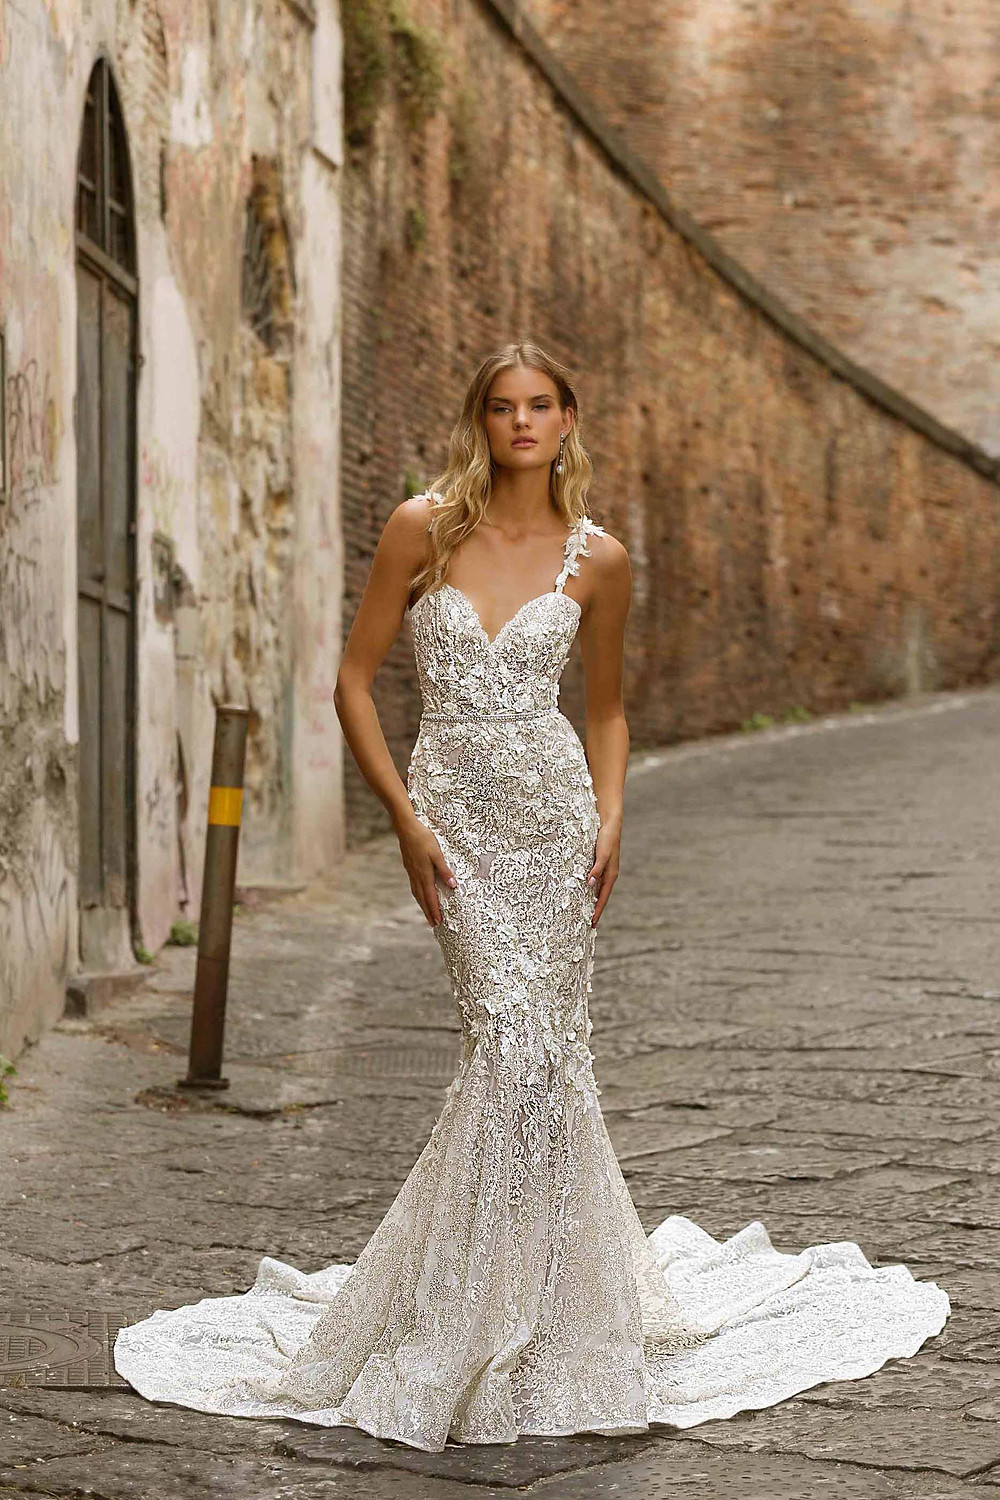 A lace mermaid wedding dress, with straps, a sweetheart neckline and and flowers